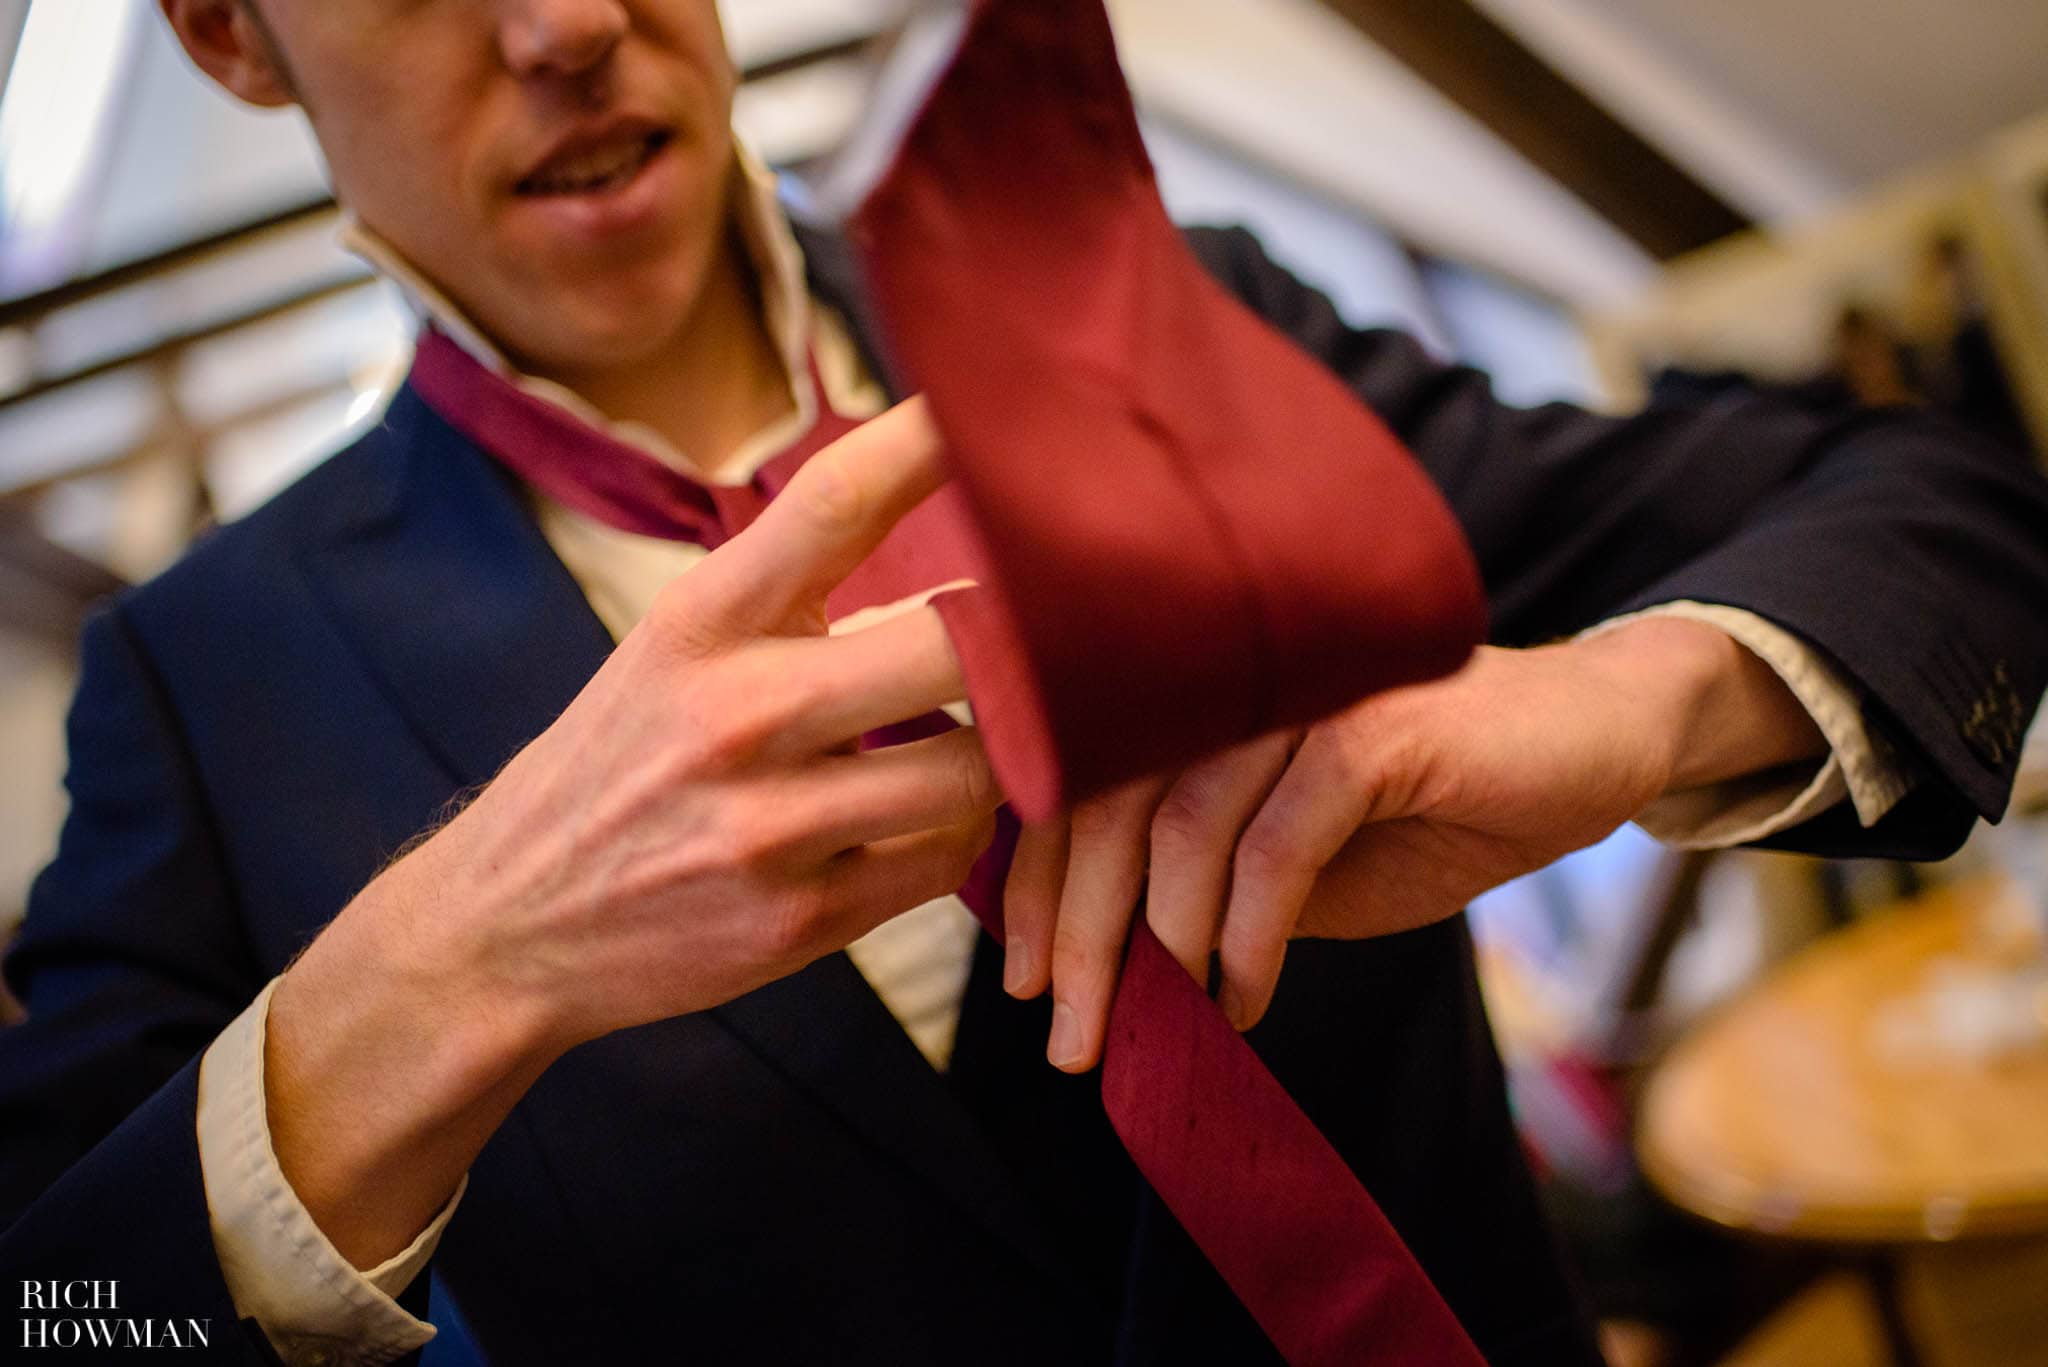 Groomsman putting on a red tie for a wedding at Huntsham Court